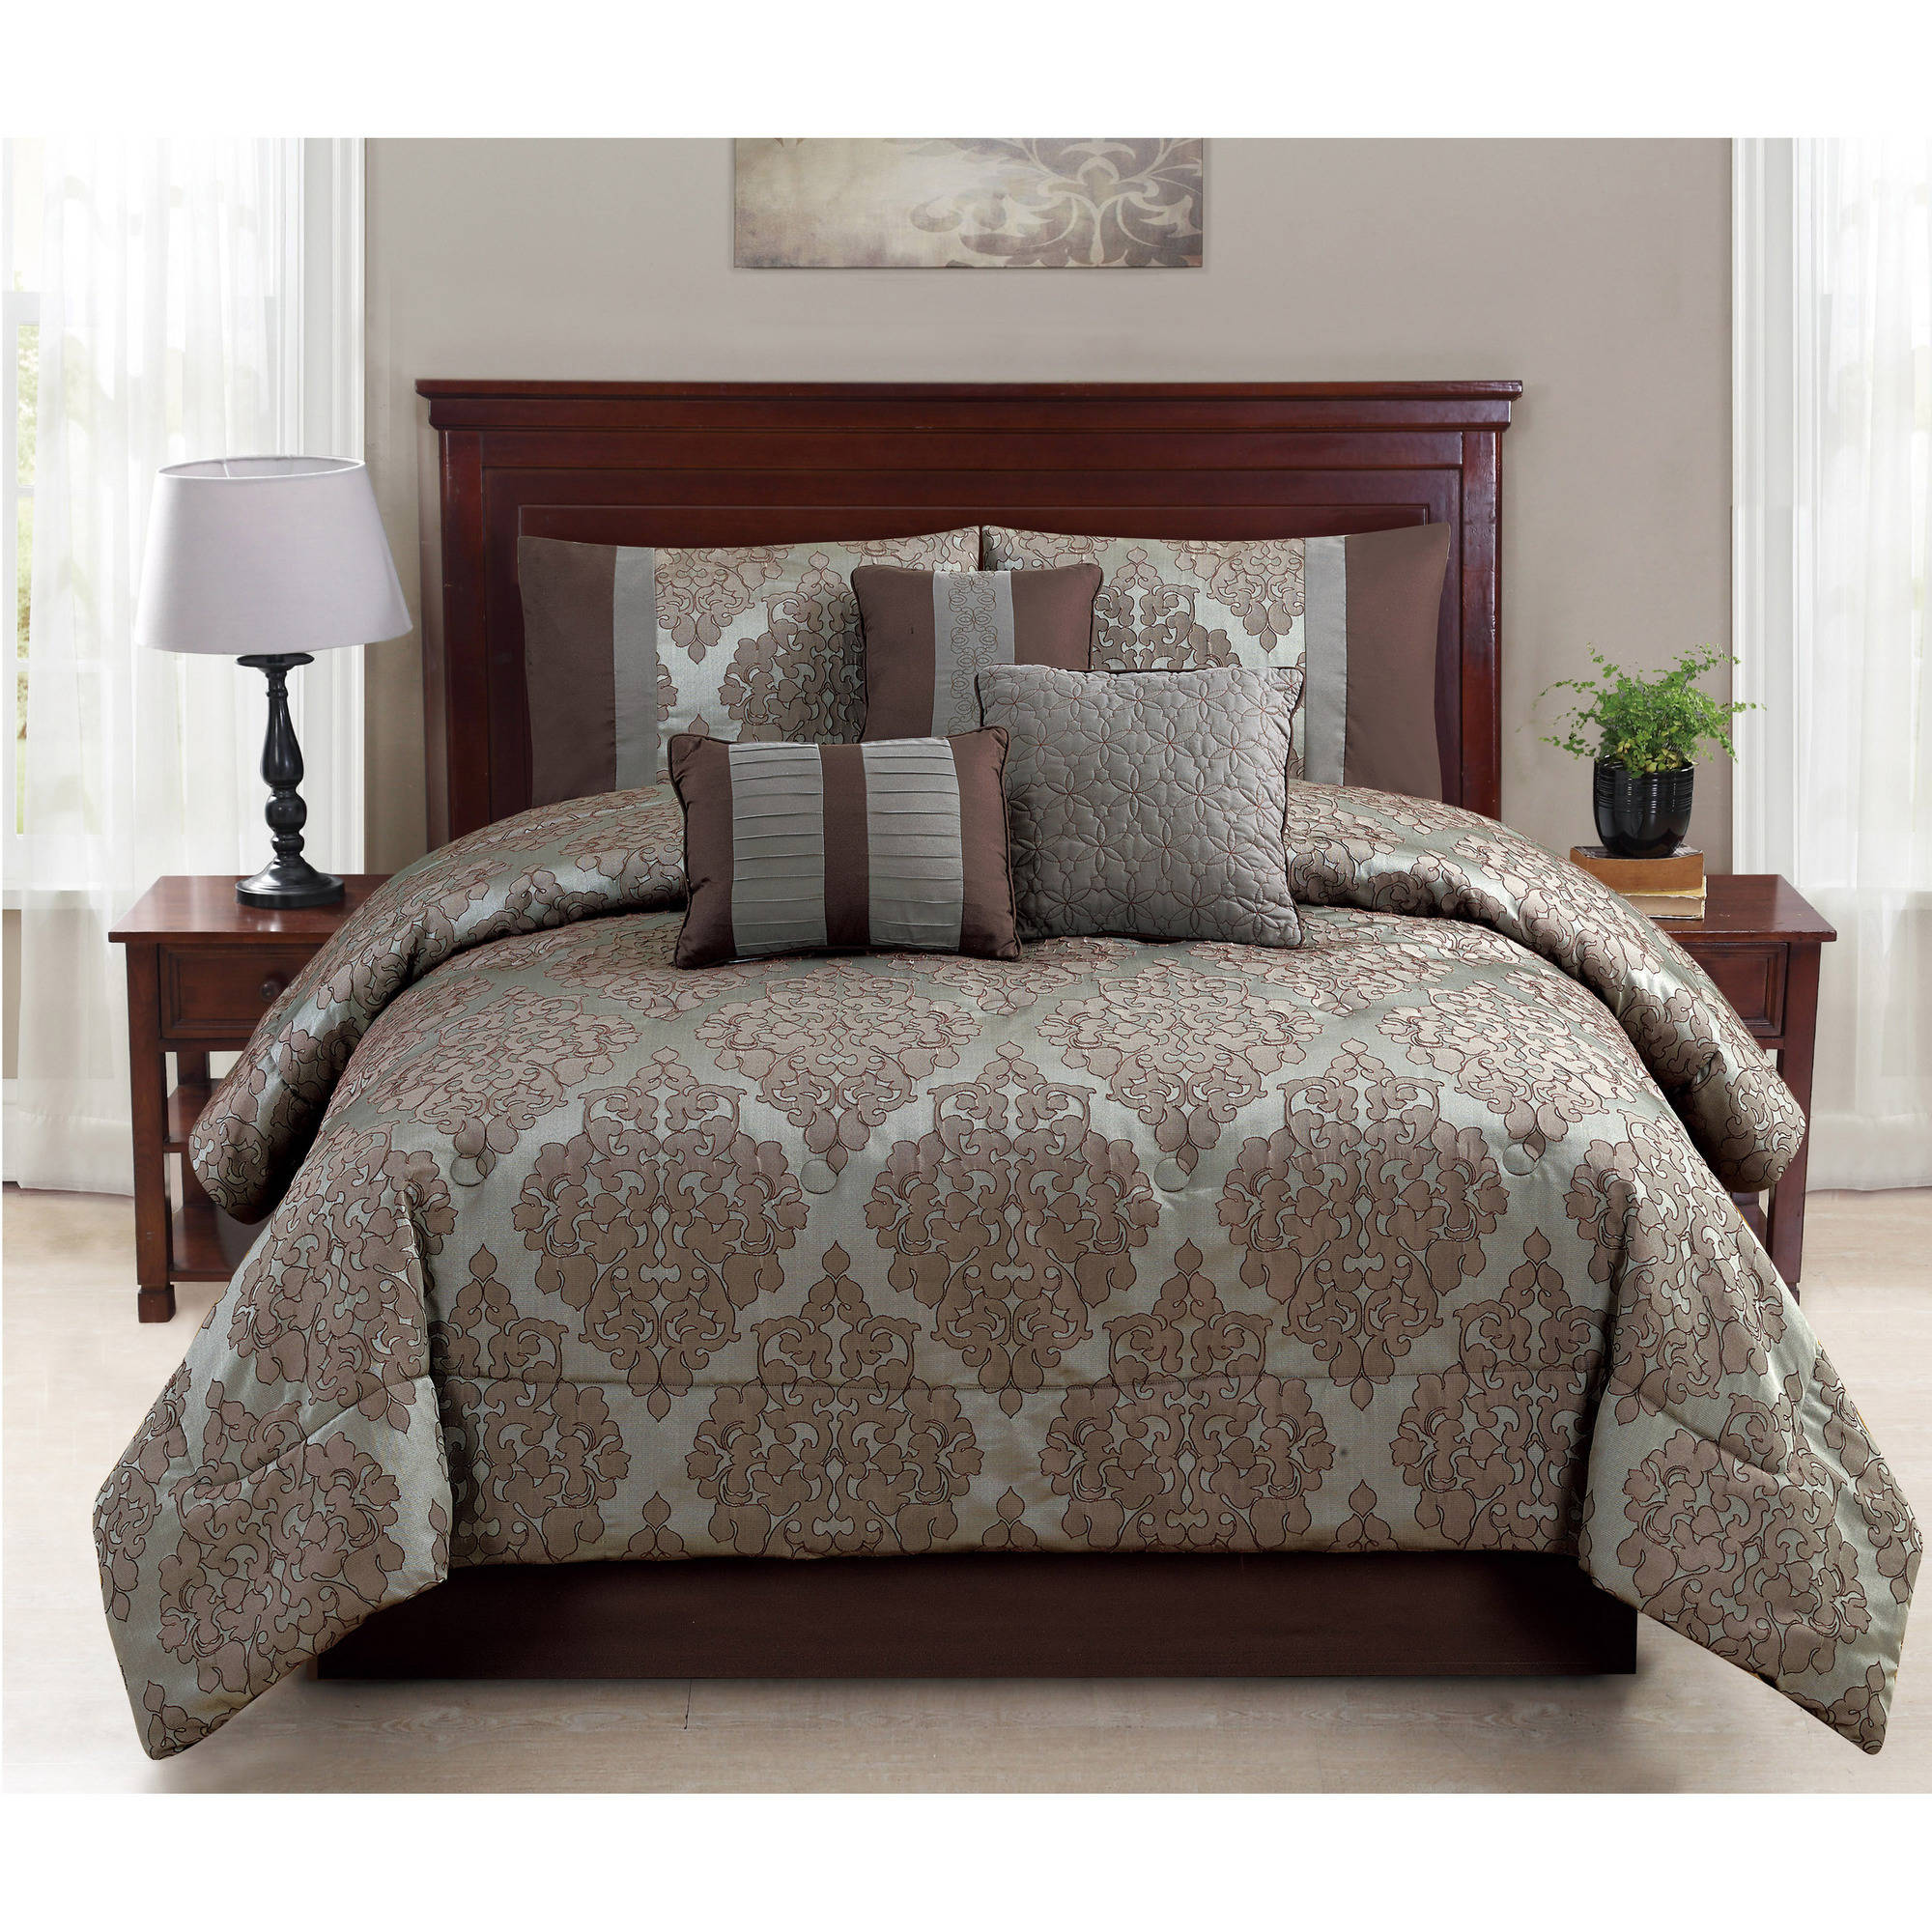 Home 187 unicorn quilt cover set return to previous page - Mainstays 7 Piece Ruth Bedding Comforter Set